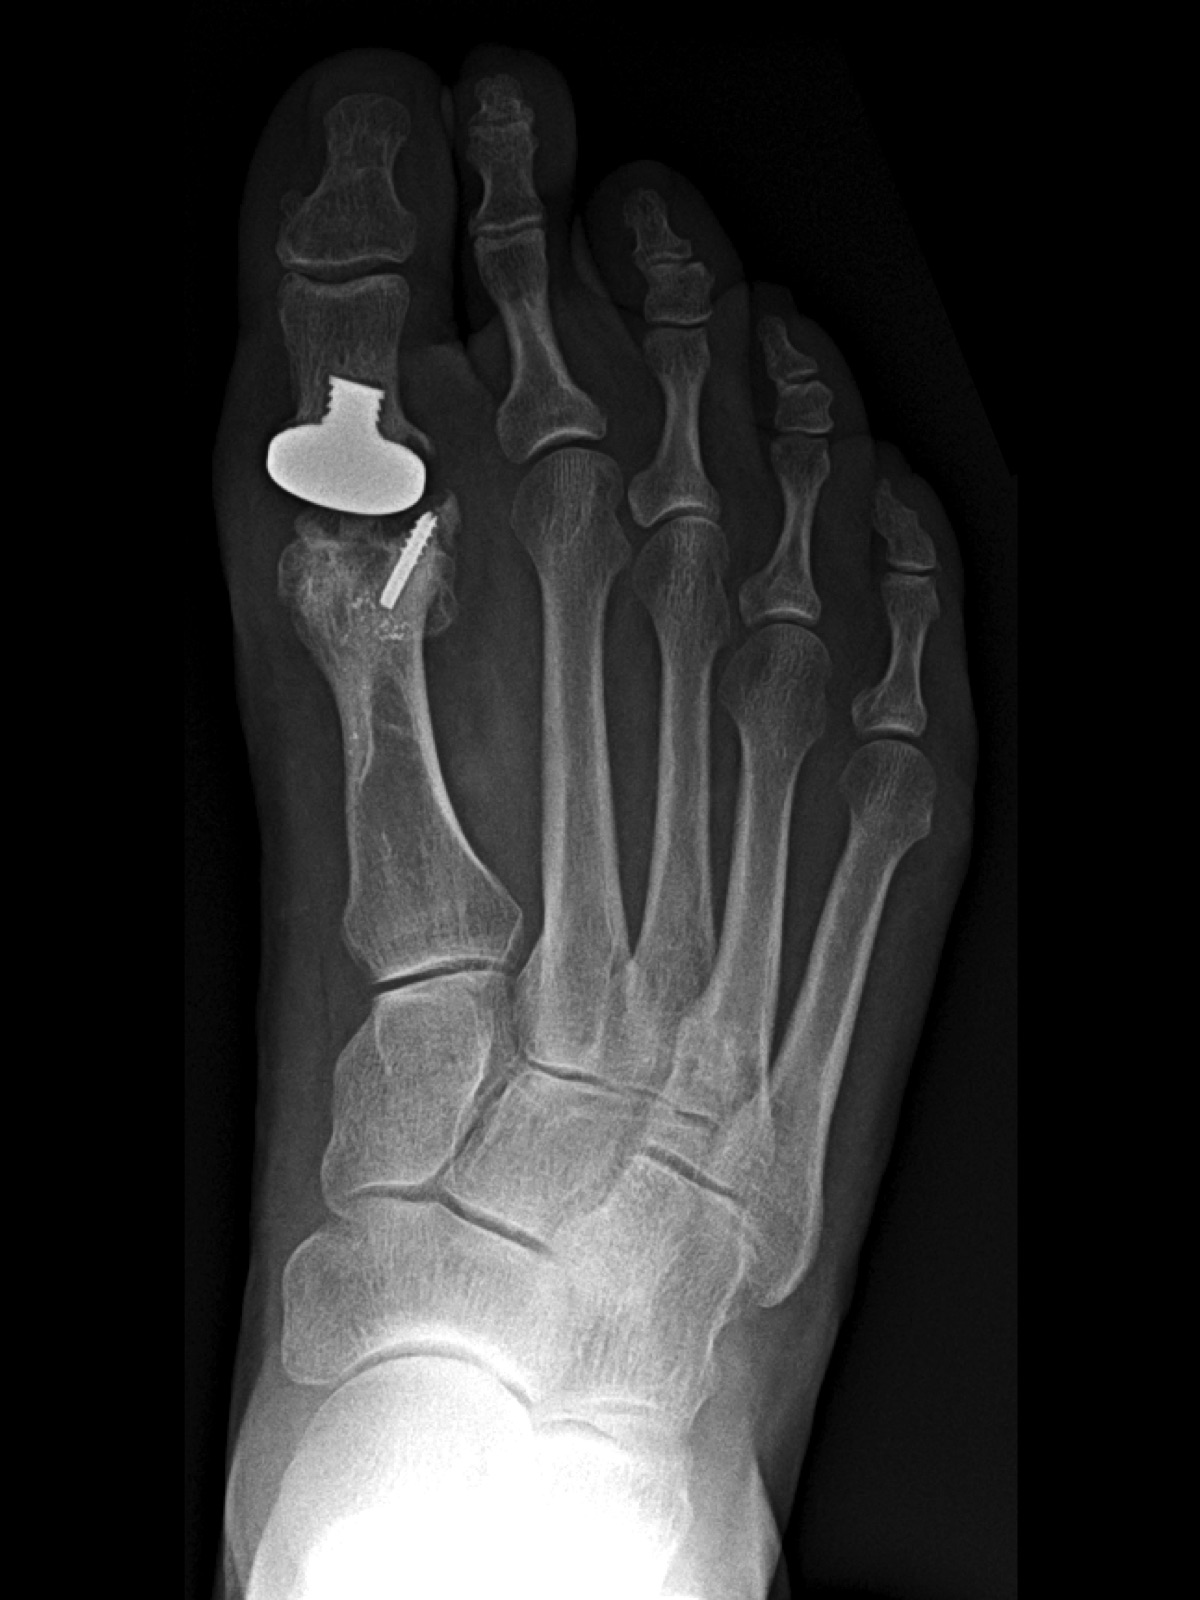 A 59-year-old woman who had a revision of a first metatarsal osteotomy with conversion to a hemi-implant (BioPro First MPJ Hemi Implant, BioPro) due to the development of grade 1 hallux rigidus in 2013. The patient developed persistent pain to her forefoot and avascular necrosis secondary to loosening of the implant and compensatory gait.